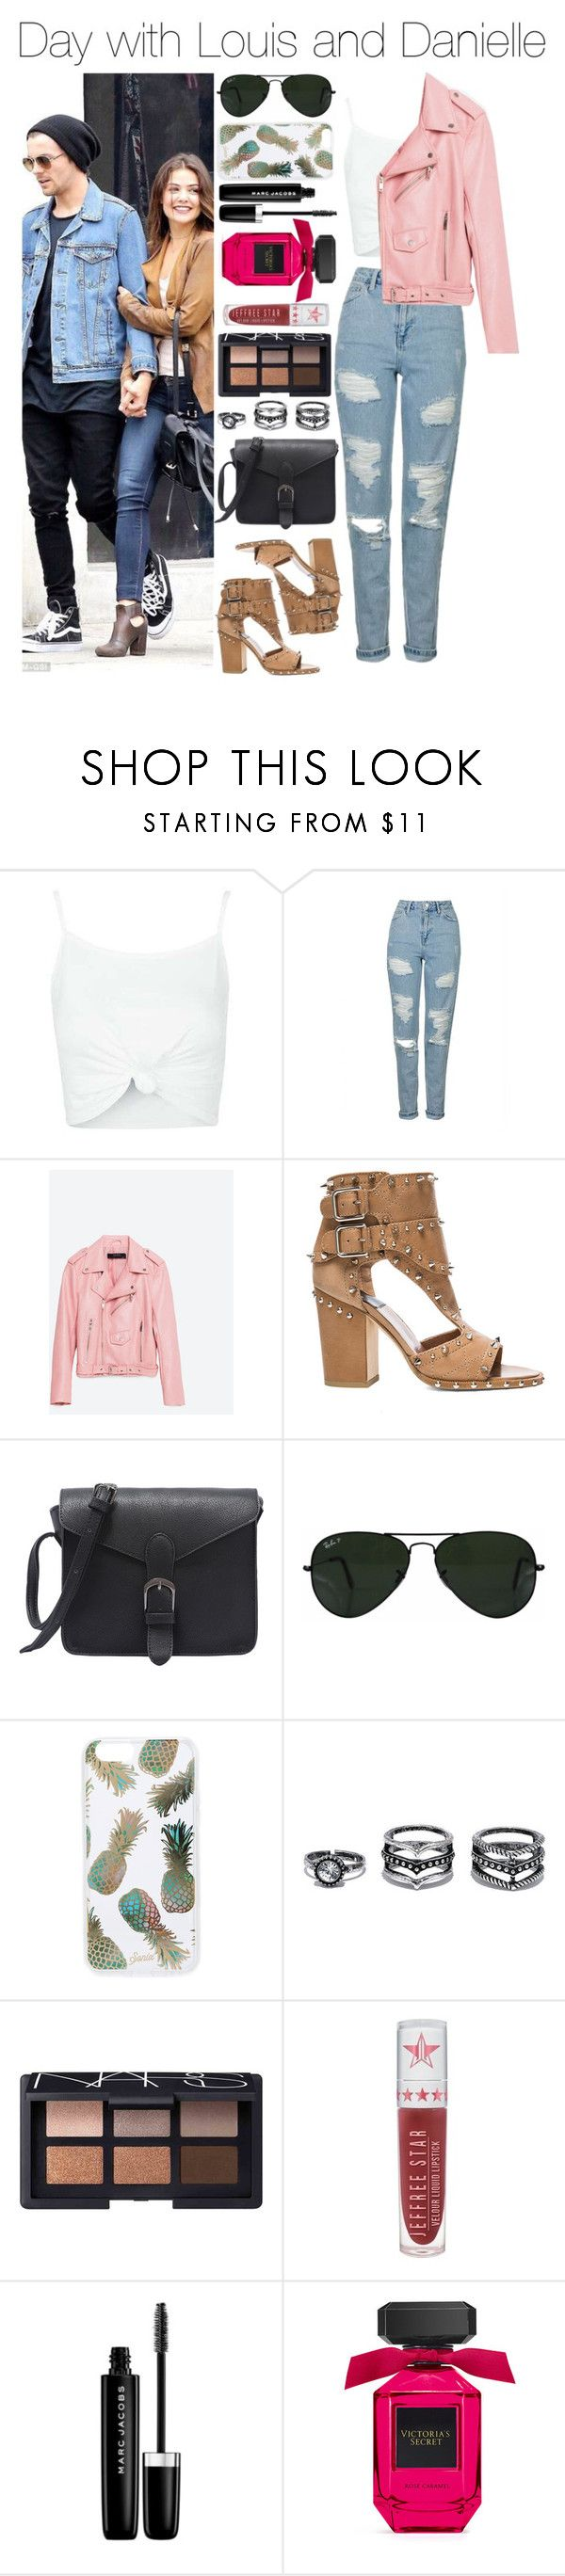 """""""Day with Louis and Danielle"""" by xhoneymoonavenuex ❤ liked on Polyvore featuring Topshop, Piel Leather, Laurence Dacade, Ray-Ban, Sonix, LULUS, NARS Cosmetics, Jeffree Star and Marc Jacobs"""